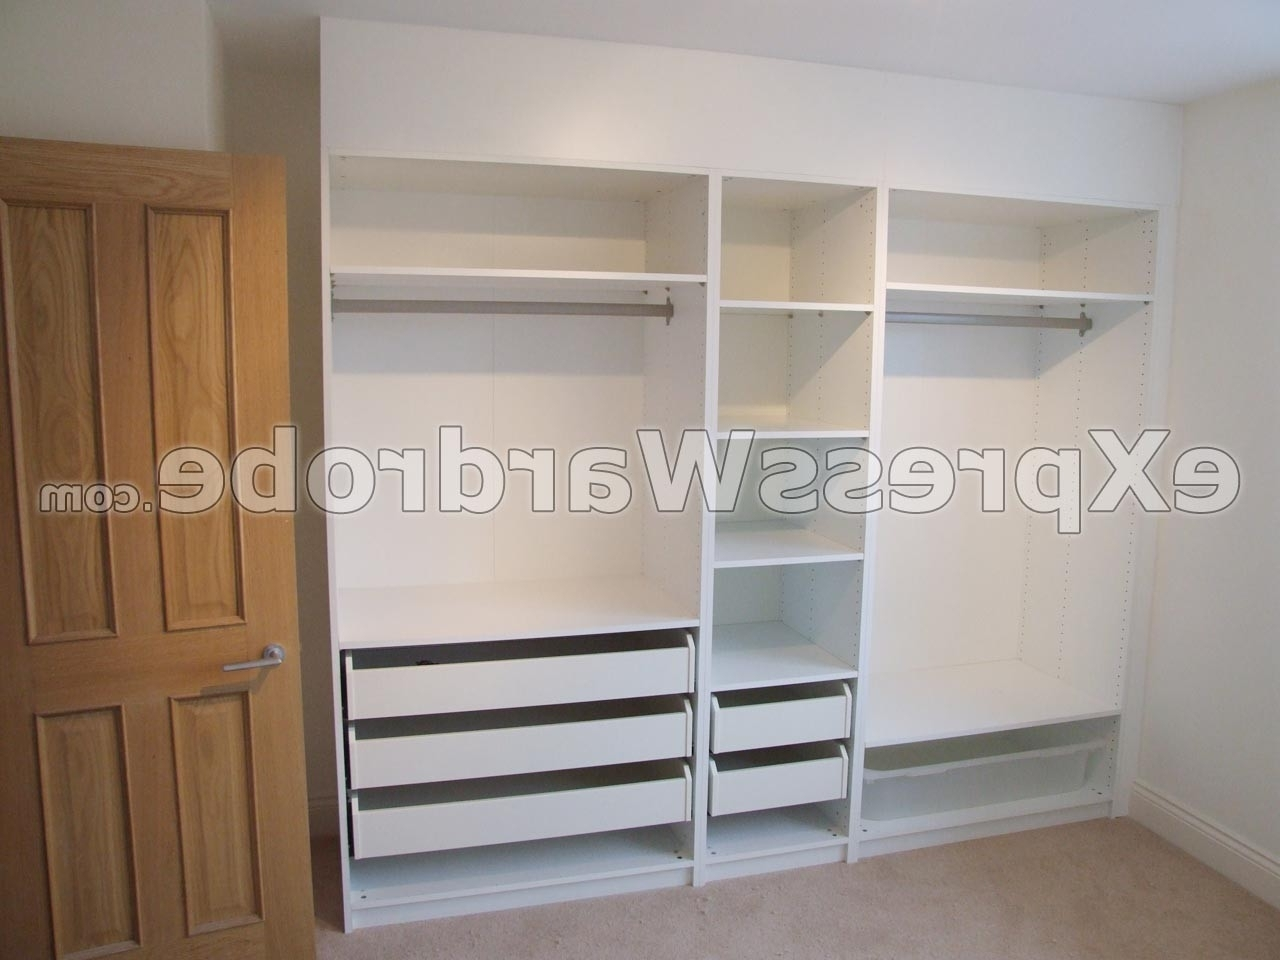 Best Of Ikea Bedroom Fitted Wardrobes – Badotcom Inside Current Cheap Bedroom Wardrobes (View 2 of 15)